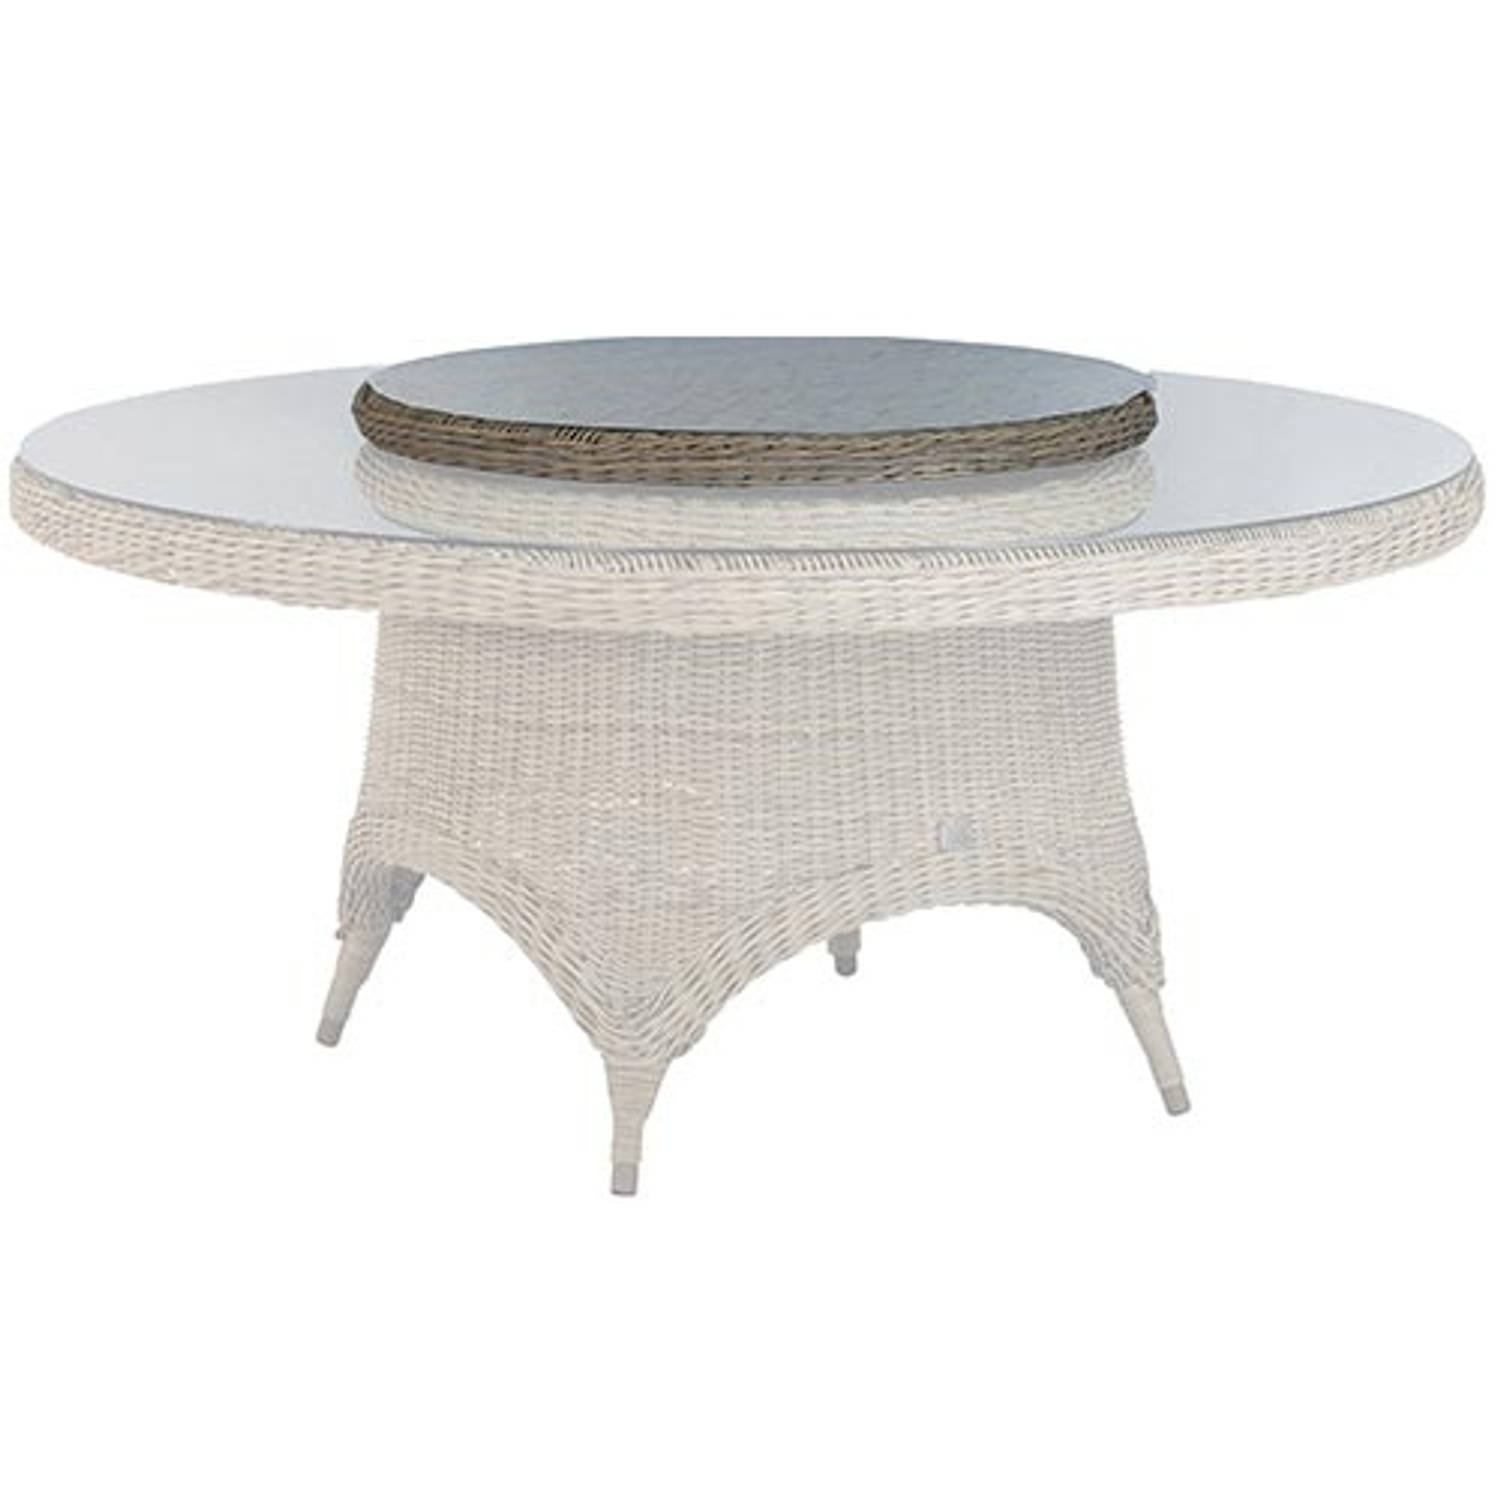 4 Seasons Outdoor Lazy susan 90 cm. Ø +glas Pure